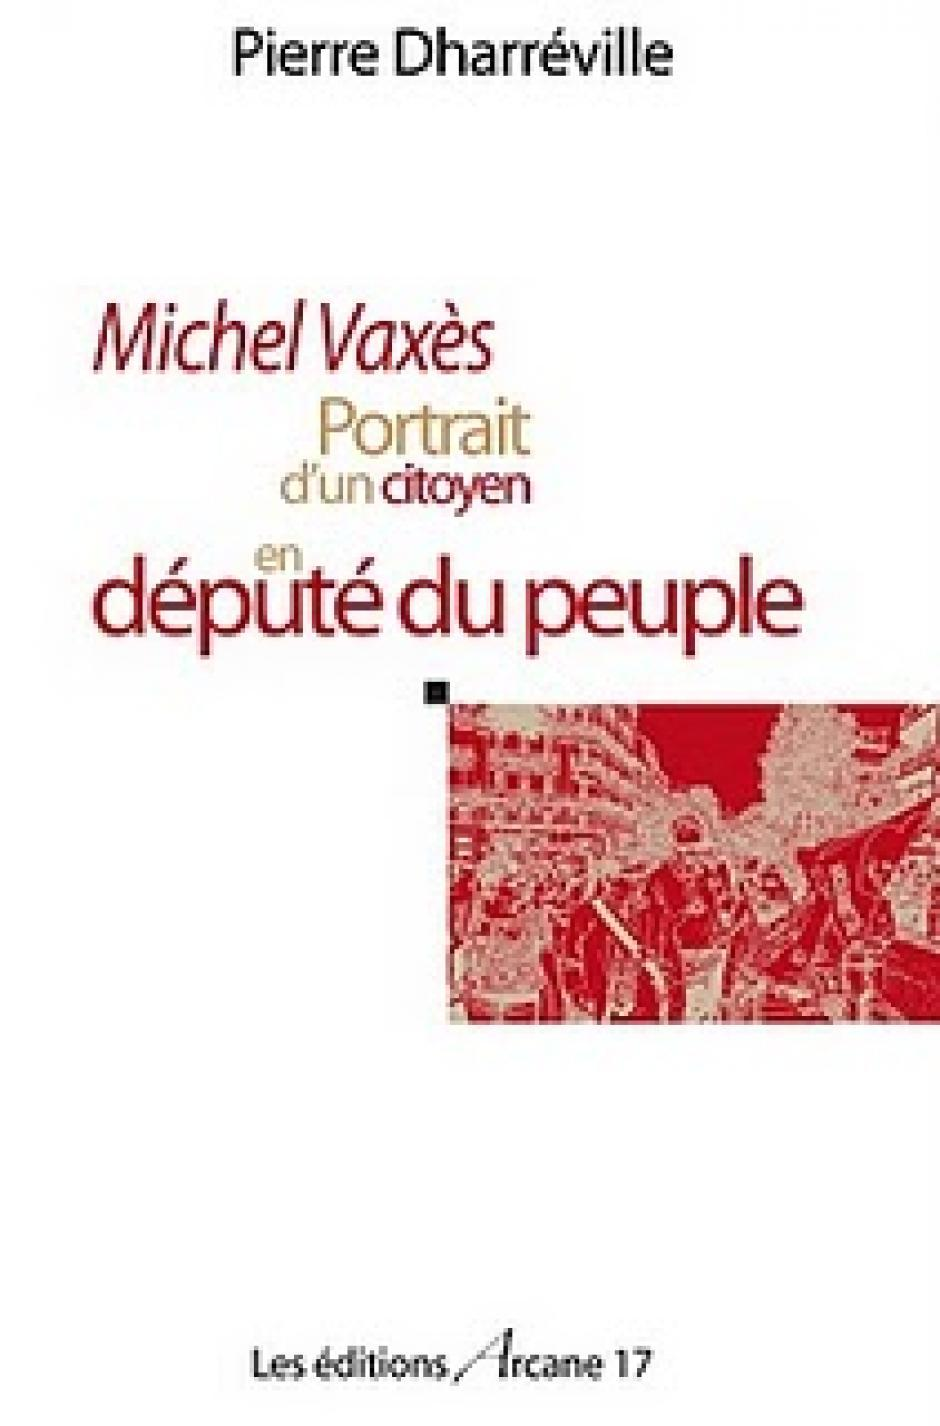 Le communisme municipal ? Michel Vaxès*